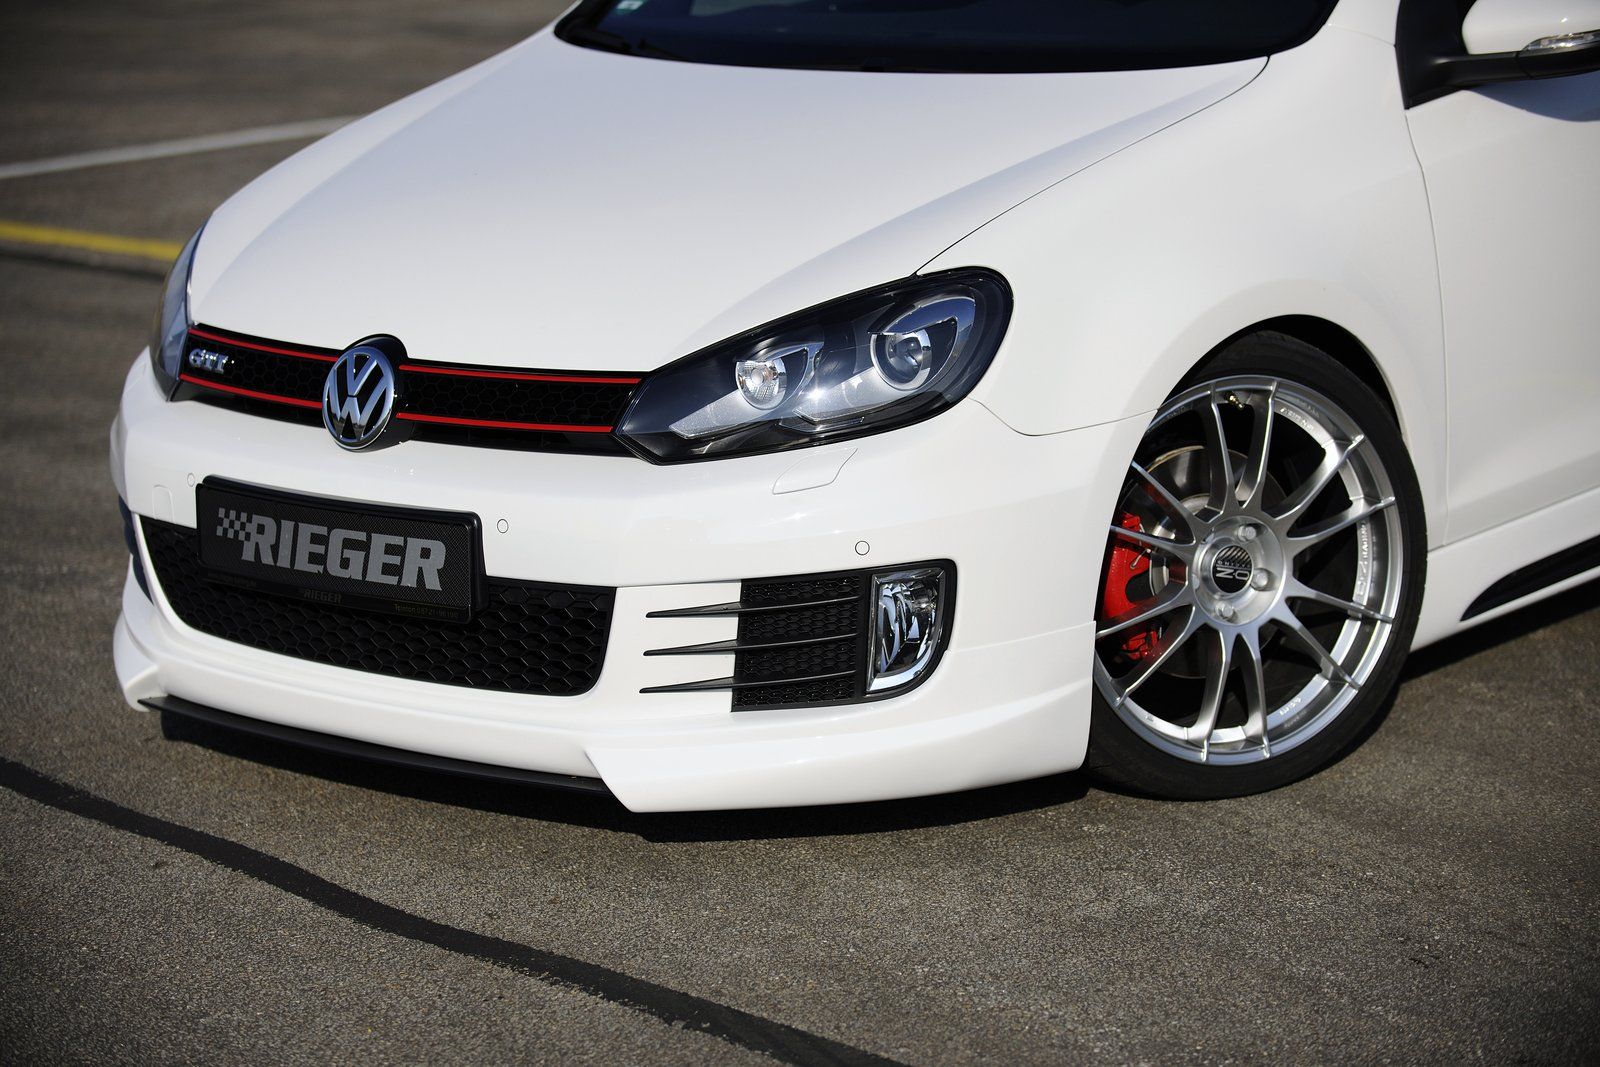 Wallpapers Vw Golf 7 Gti 2012 Pictures to pin on Pinterest